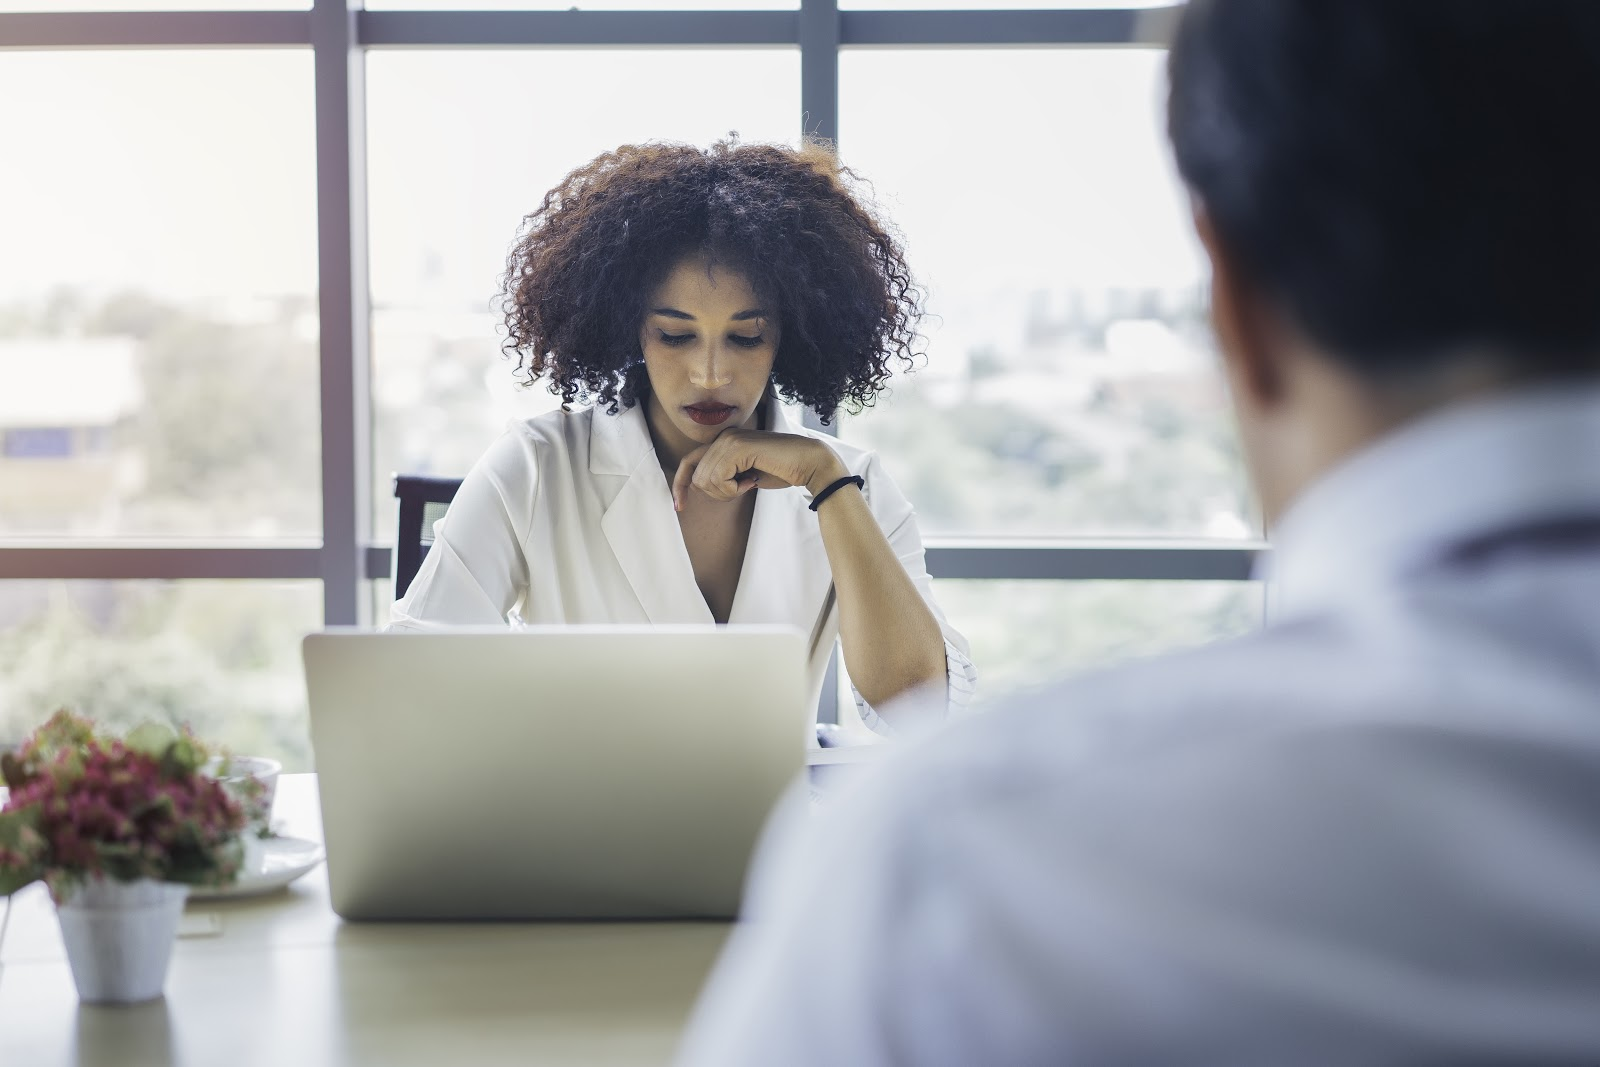 5 Intern Exit Interview Questions Every Company Should Ask Its Interns